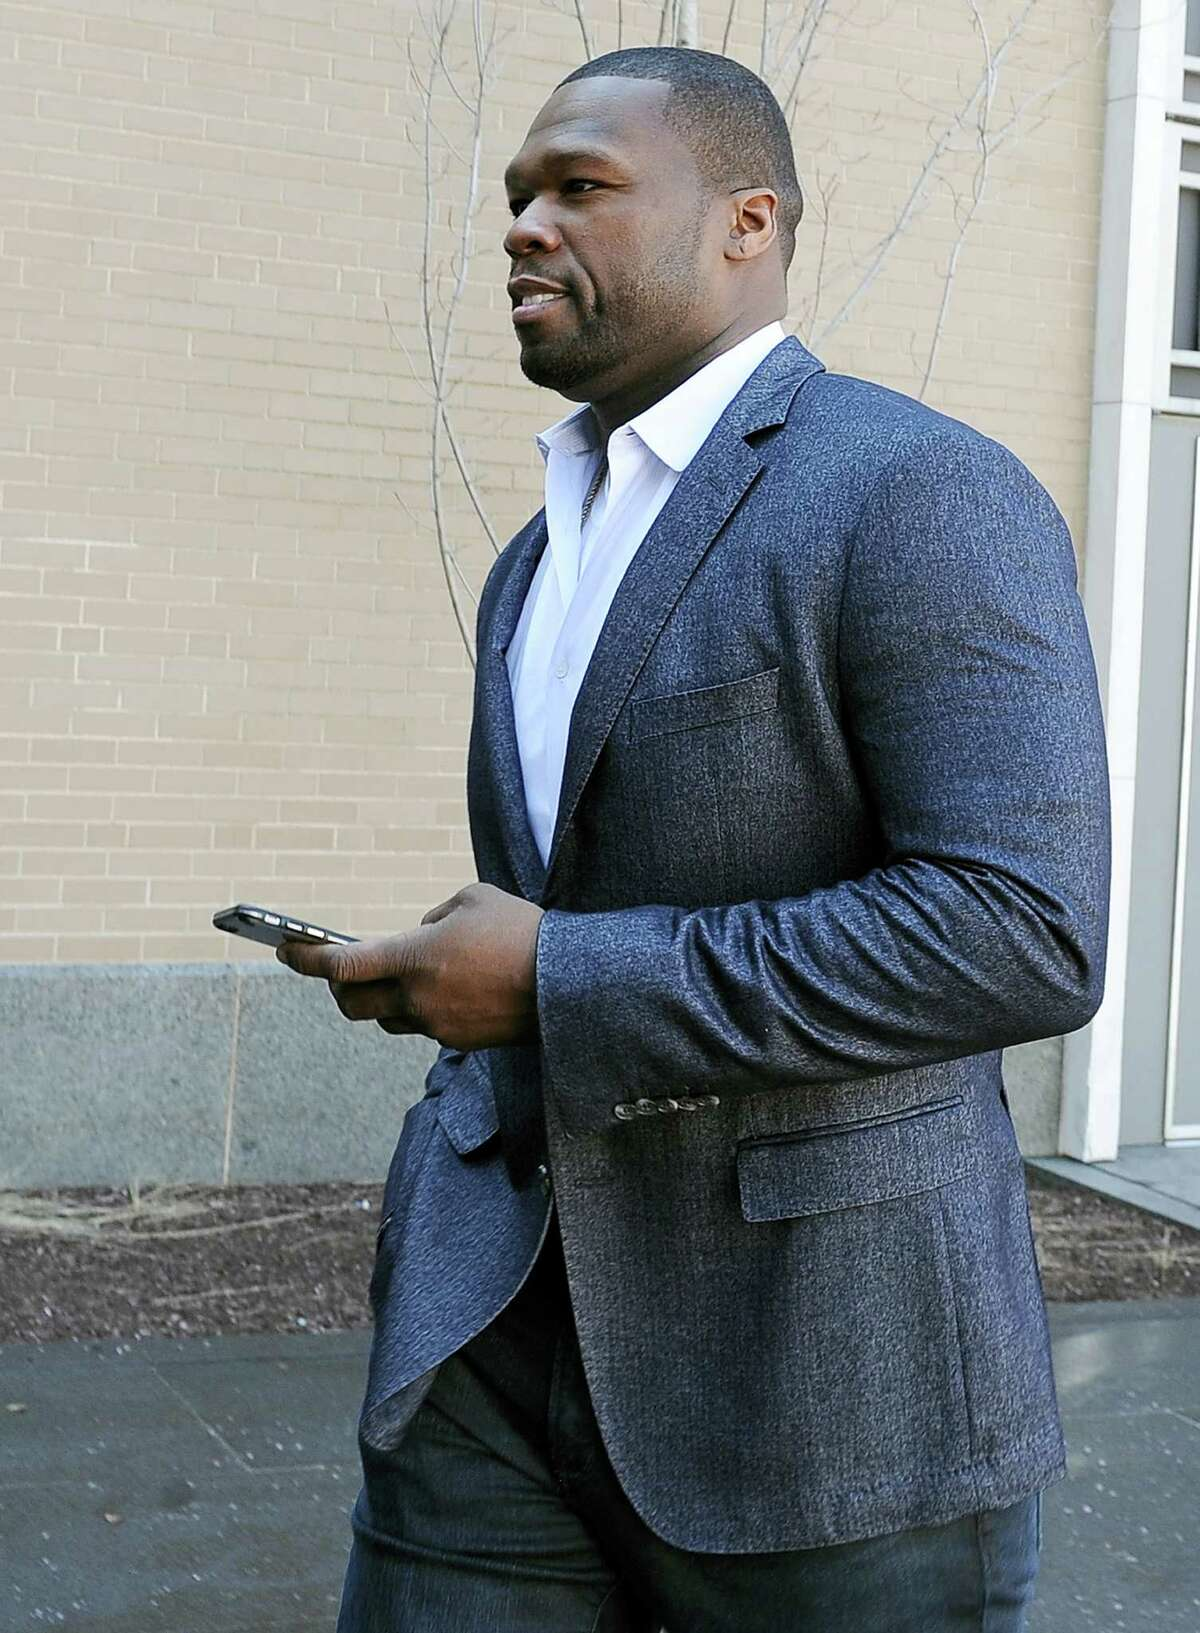 """Curtis """"50 Cent"""" Jackson arrives at court for a federal bankruptcy hearing, Wednesday, March 9, 2016, in Hartford. Jackson has been ordered to explain Instagram photos, with one depicting him next to piles of cash arranged to spell out """"broke."""" Jackson filed for bankruptcy last year after a New York City jury ordered him to pay $7 million to a woman who said he posted her sex tape online."""